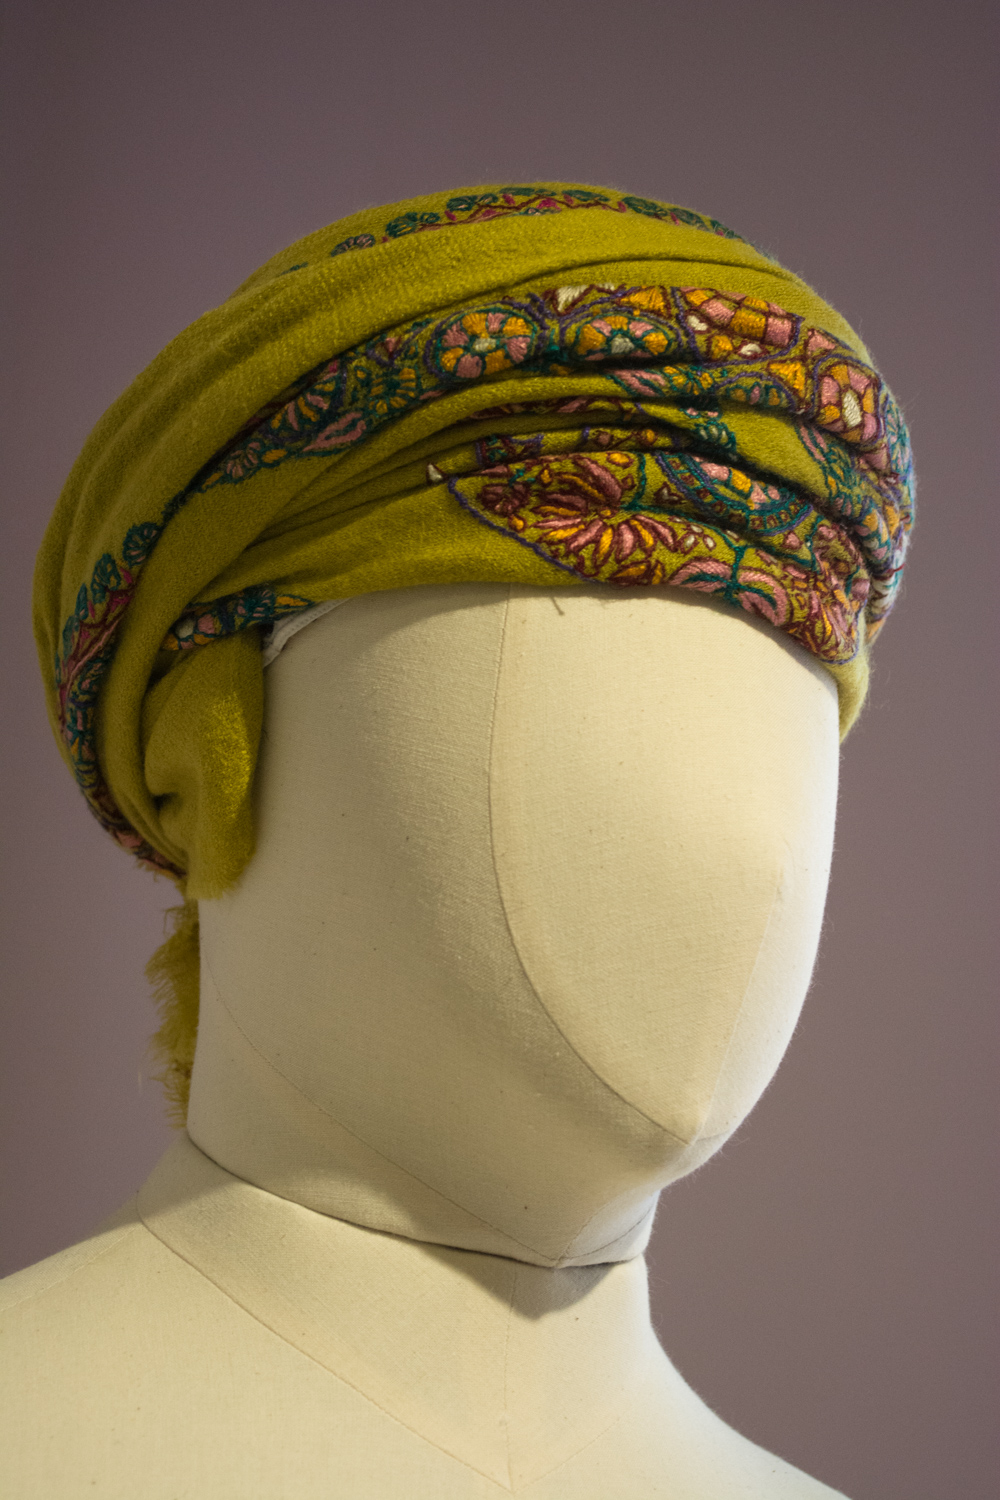 The massar can be worn with or without a kuma (cap) underneath.